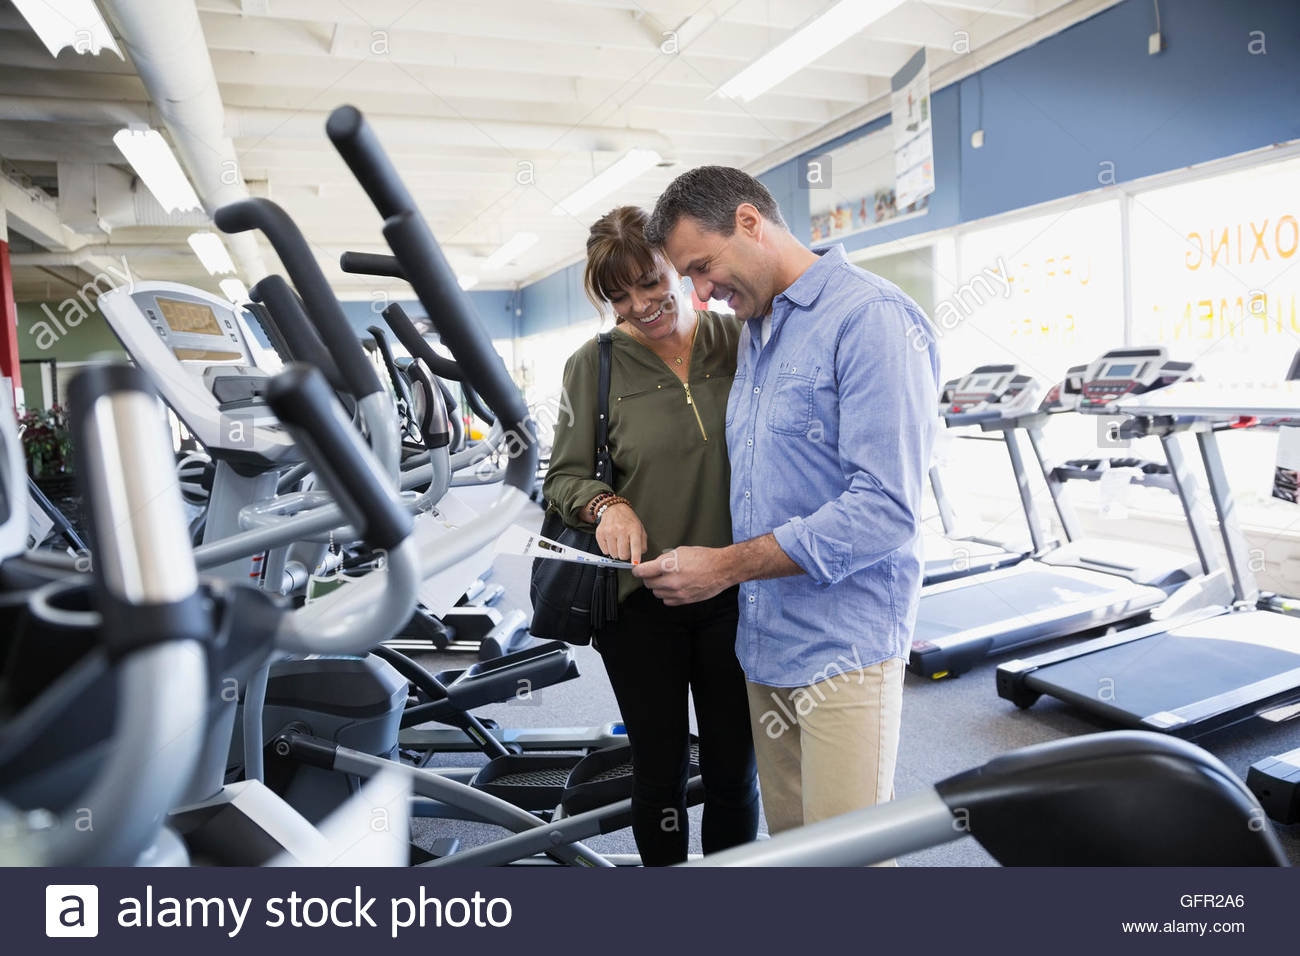 Couple looking at price tag on home gym cardio equipment in store